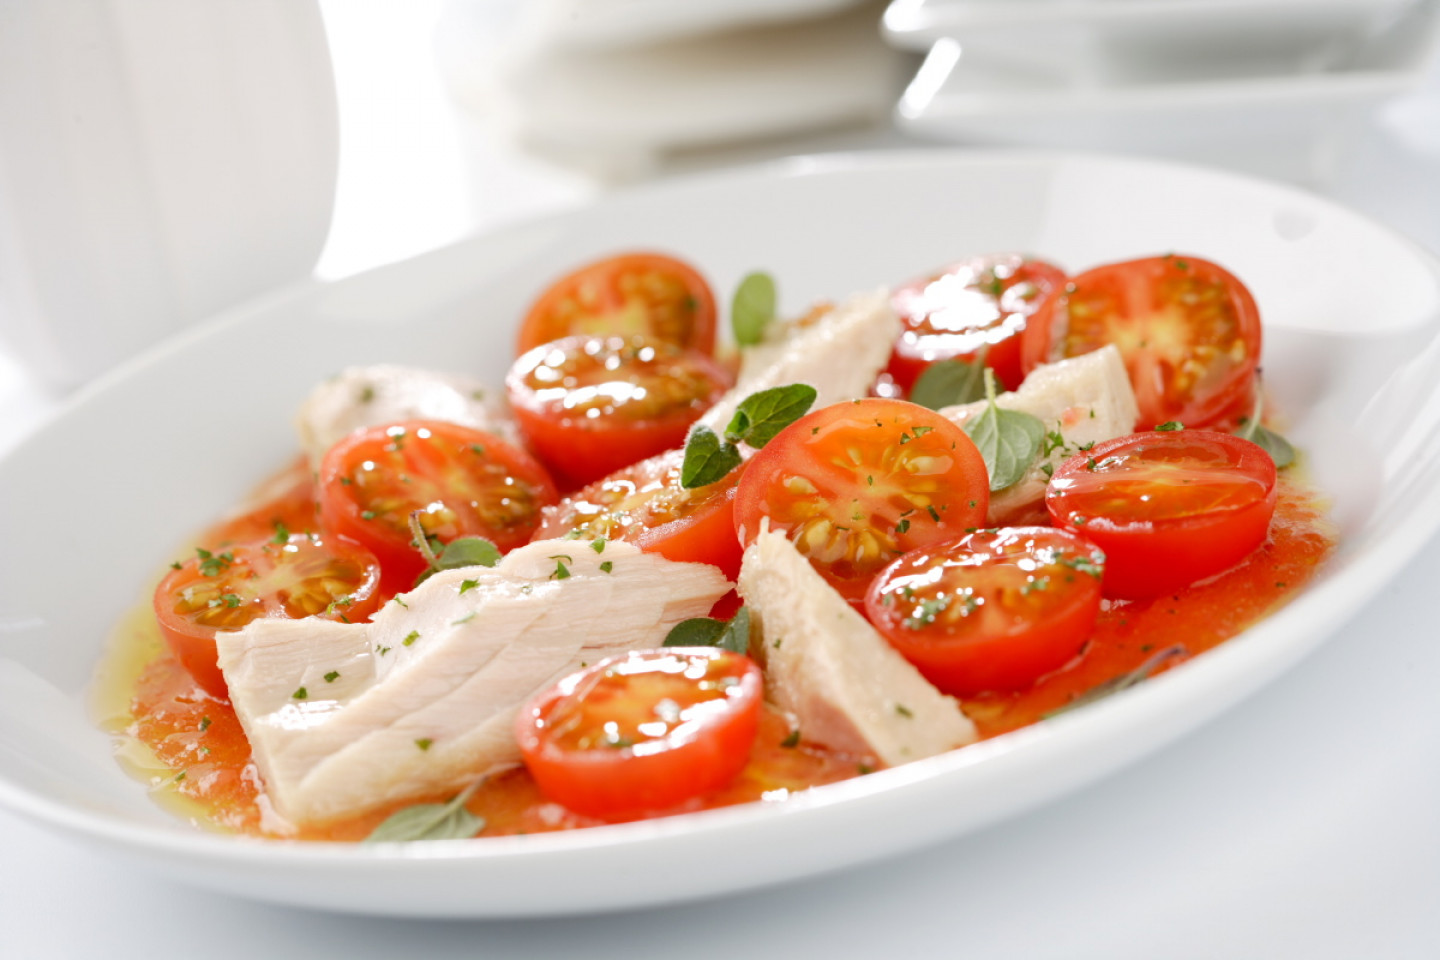 food;salads;tomatoes;vegetables;tuna;albacore;fatty fishes;aromatic herbs;leaves;cherry tomato